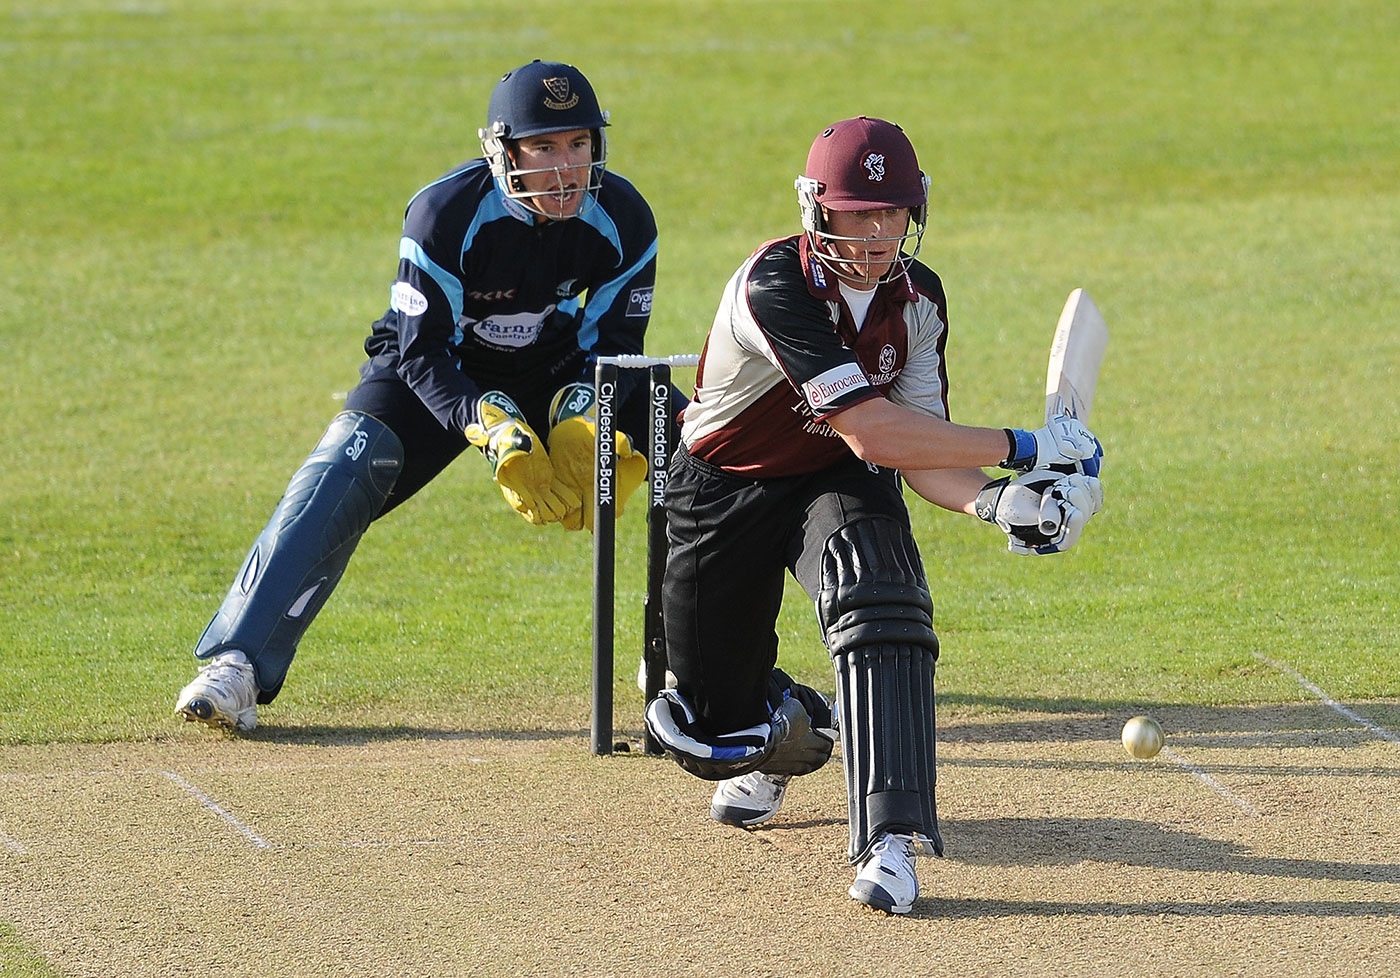 All the shots, and then some: in 2010, Buttler made 440 runs in the CB40 tournament